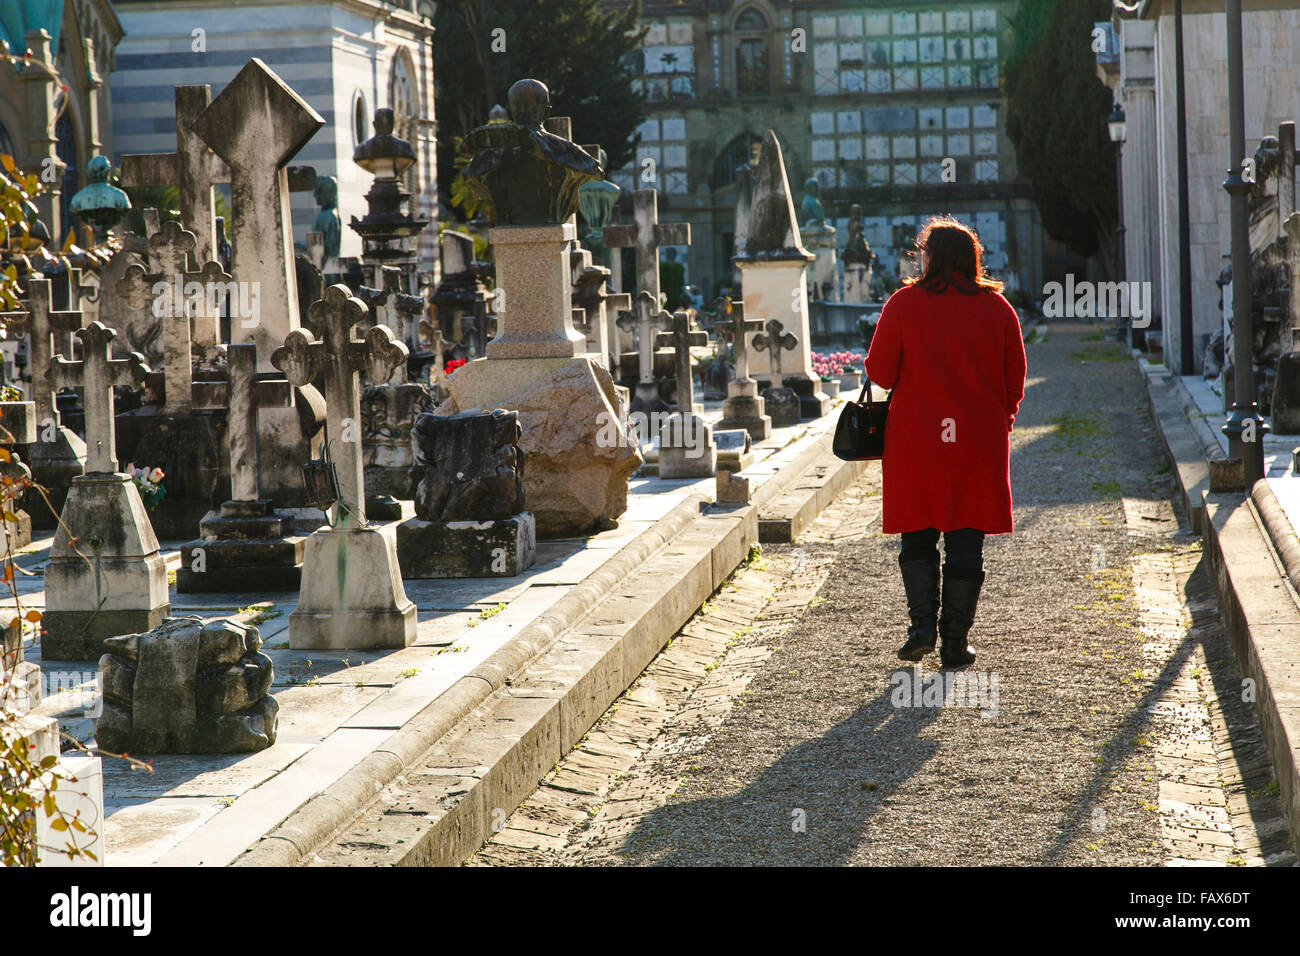 Woman in red coat soberly walking through cemetery in Florence, Italy. - Stock Image